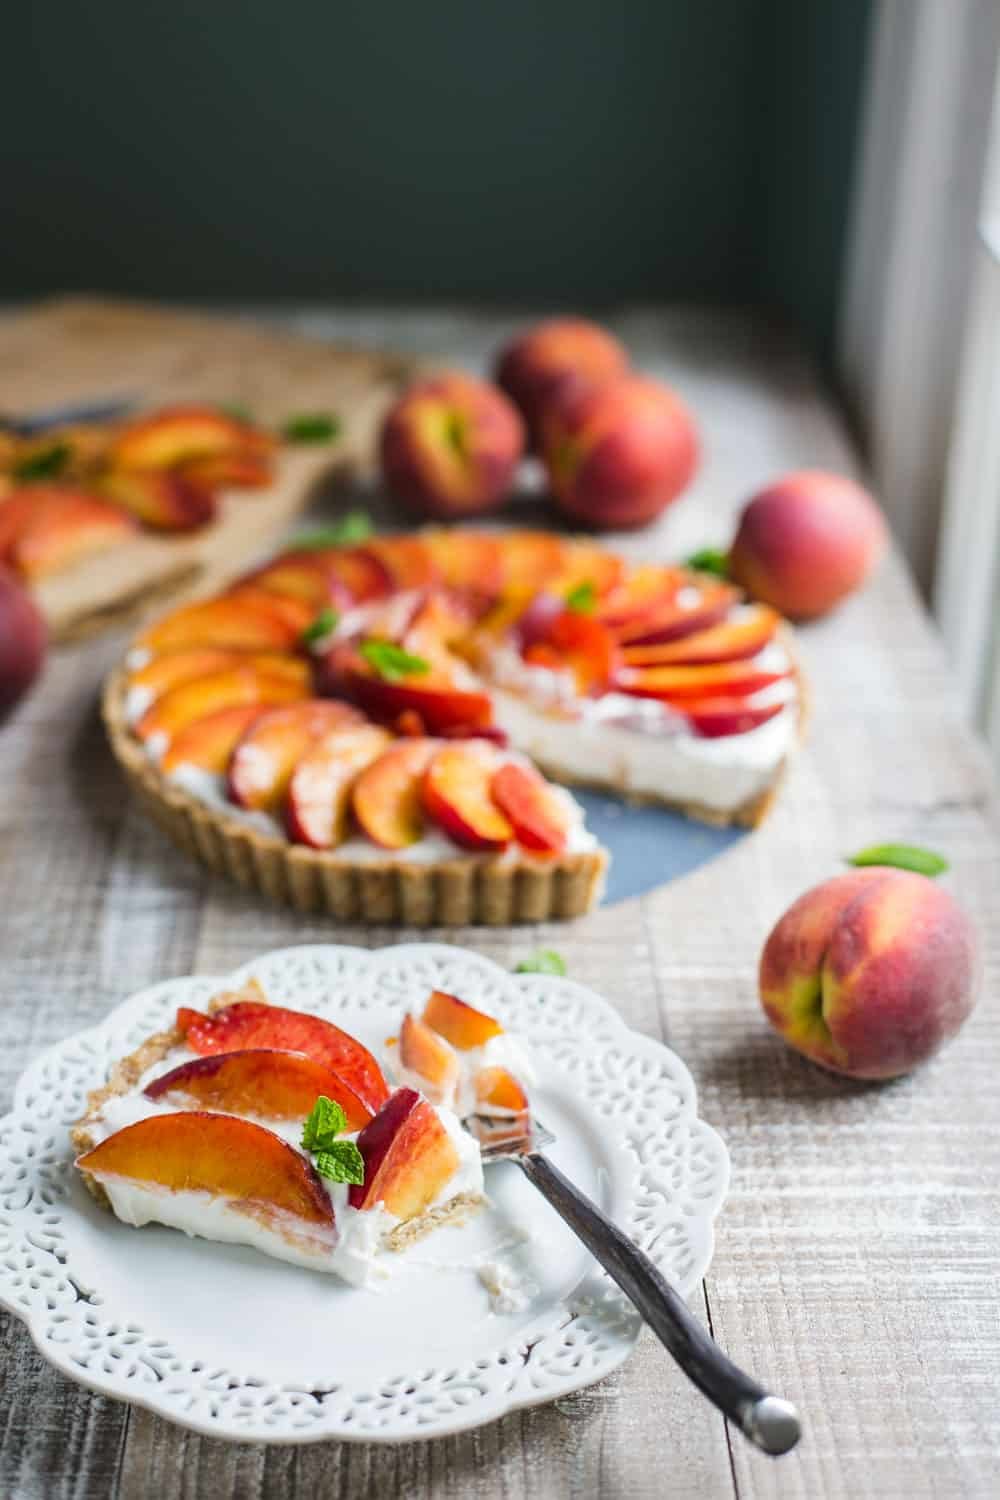 No Bake Peach Pie (V + GF)- this no bake pie recipe is SO easy to make, VEGAN, gluten free, and something that the whole family will love!